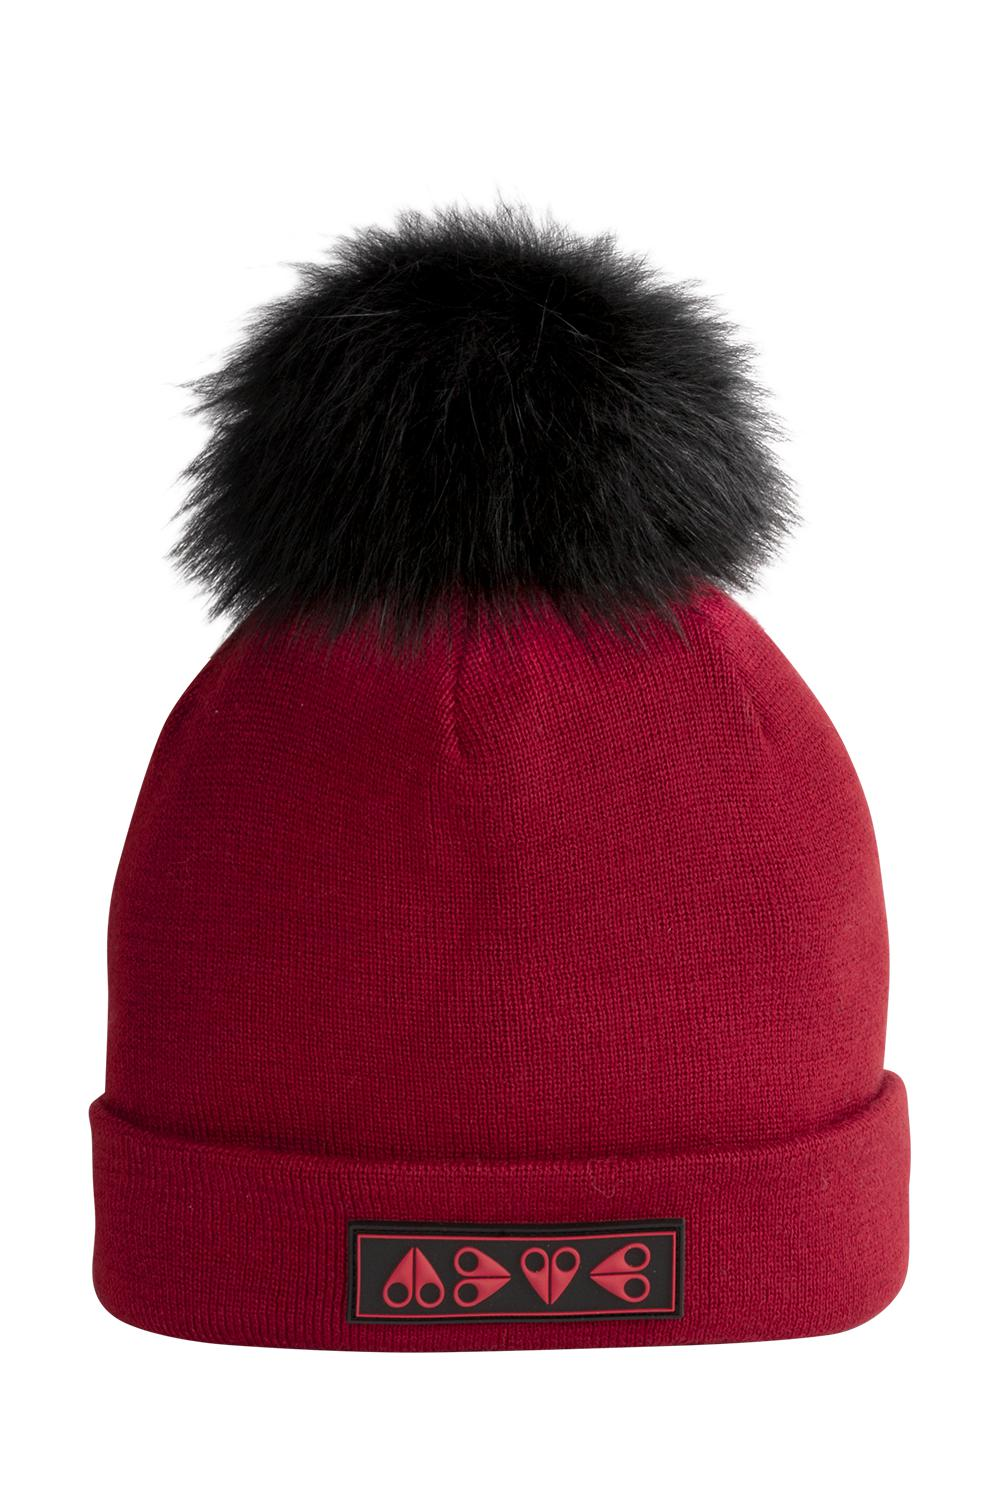 POM POM TOQUE-HAT-MOOSE KNUCKLES-Janan Boutique